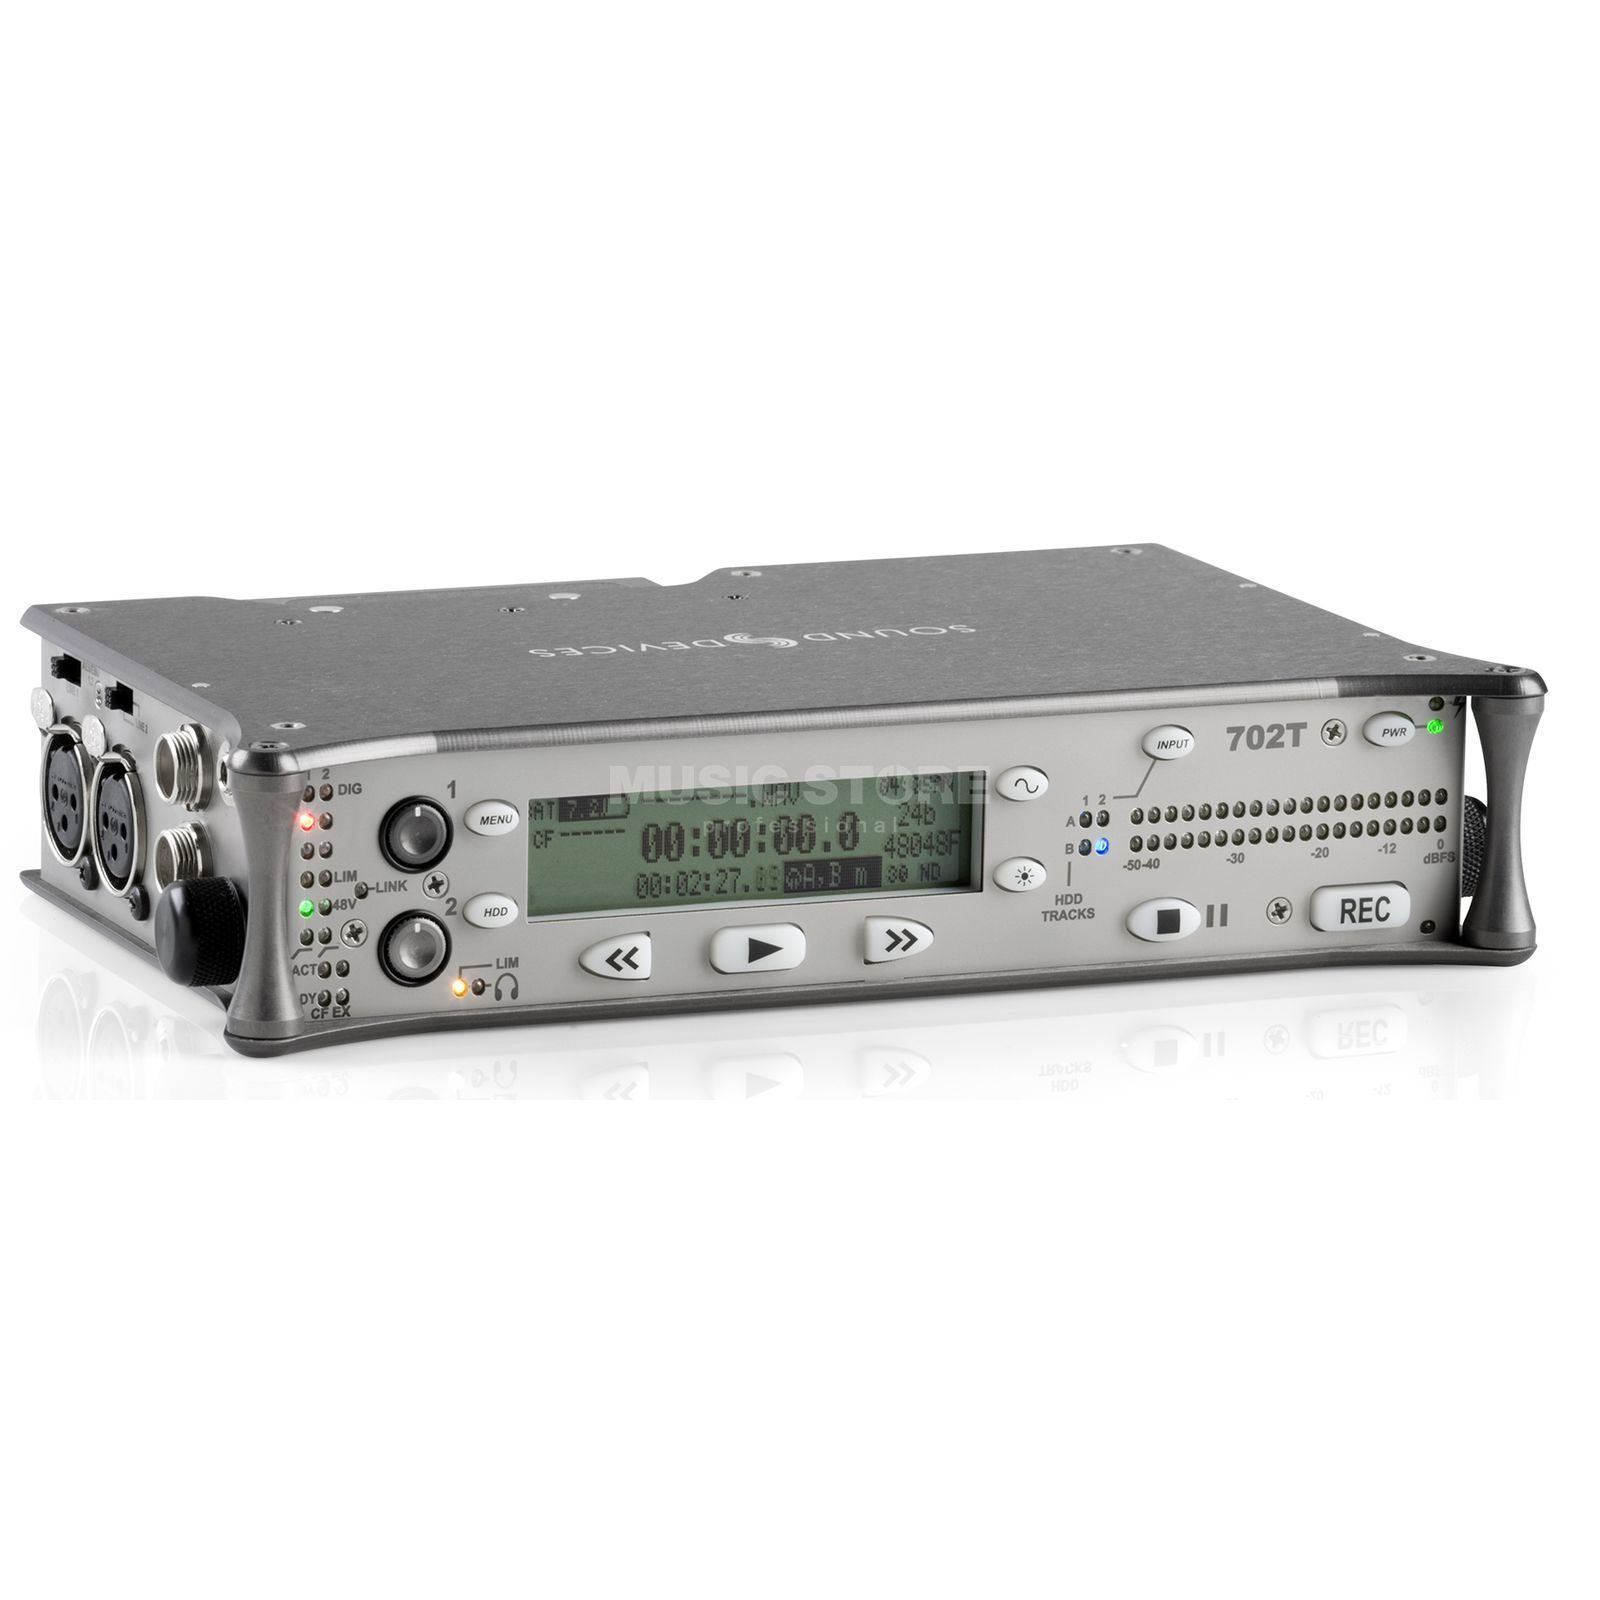 Sounddevices 702T 2-Kanal CF-Recorder Produktbild